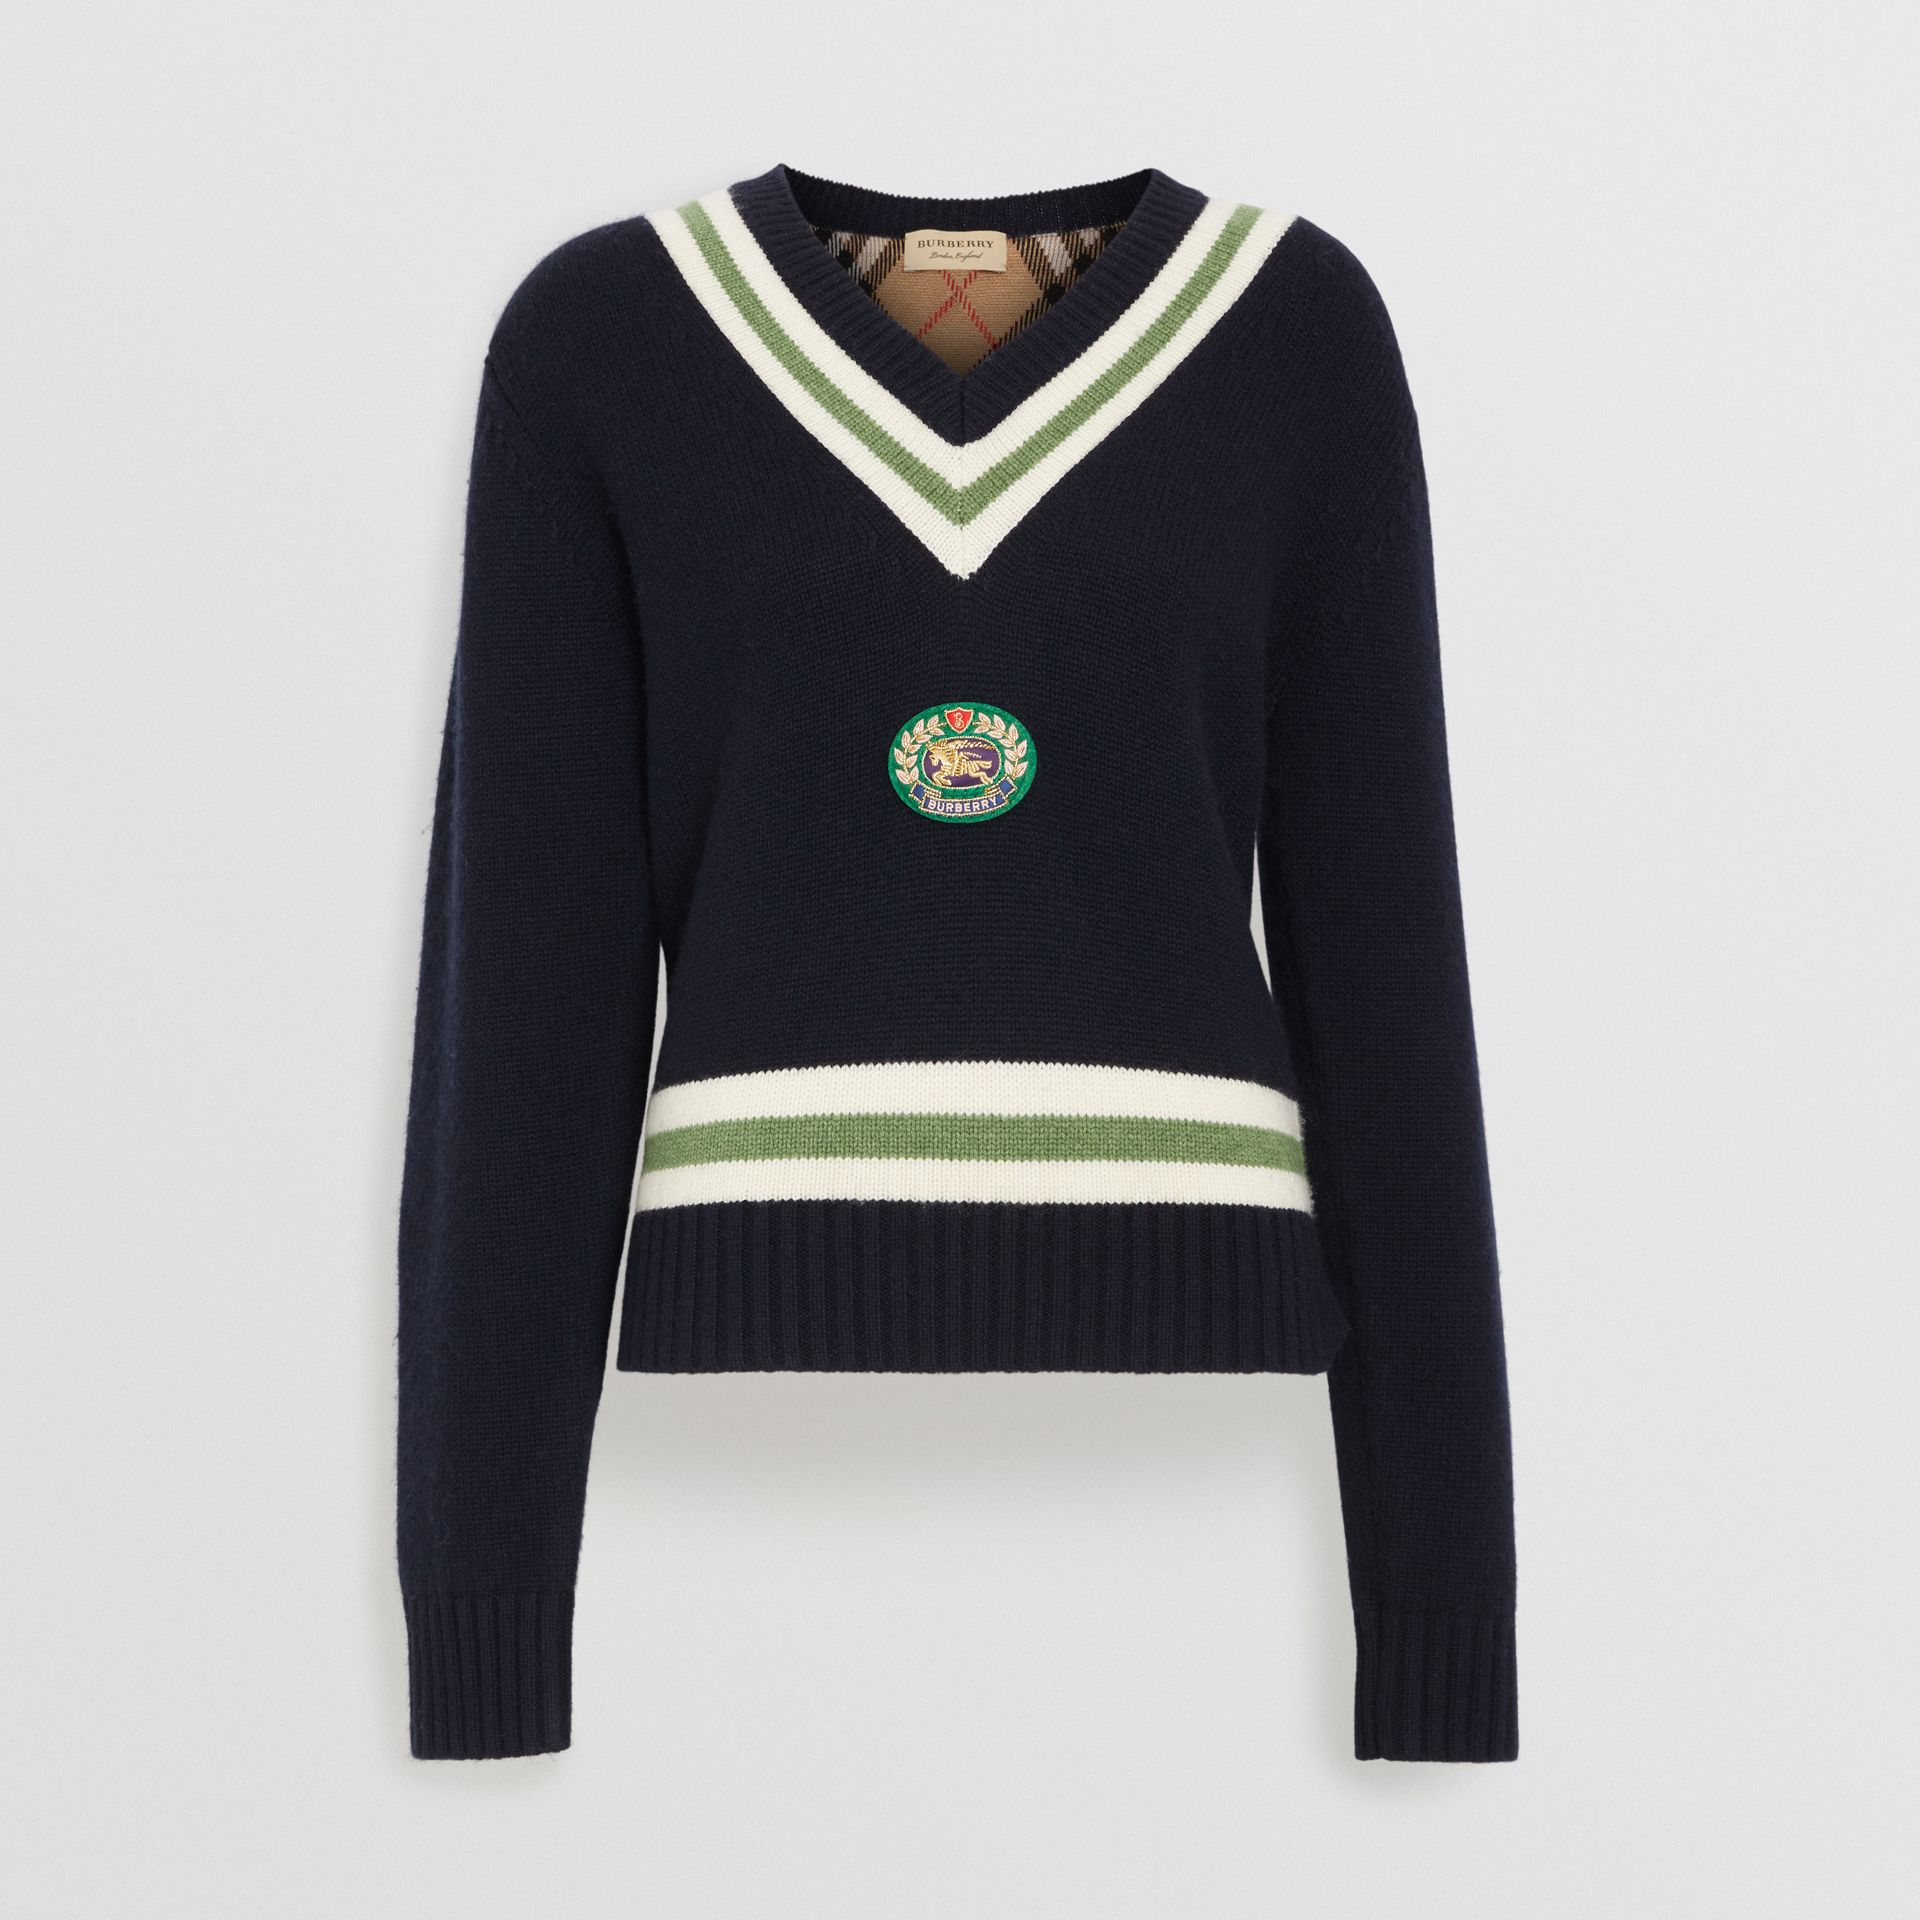 Embroidered Crest Wool Cashmere Sweater in Navy - Women | Burberry United Kingdom - gallery image 3